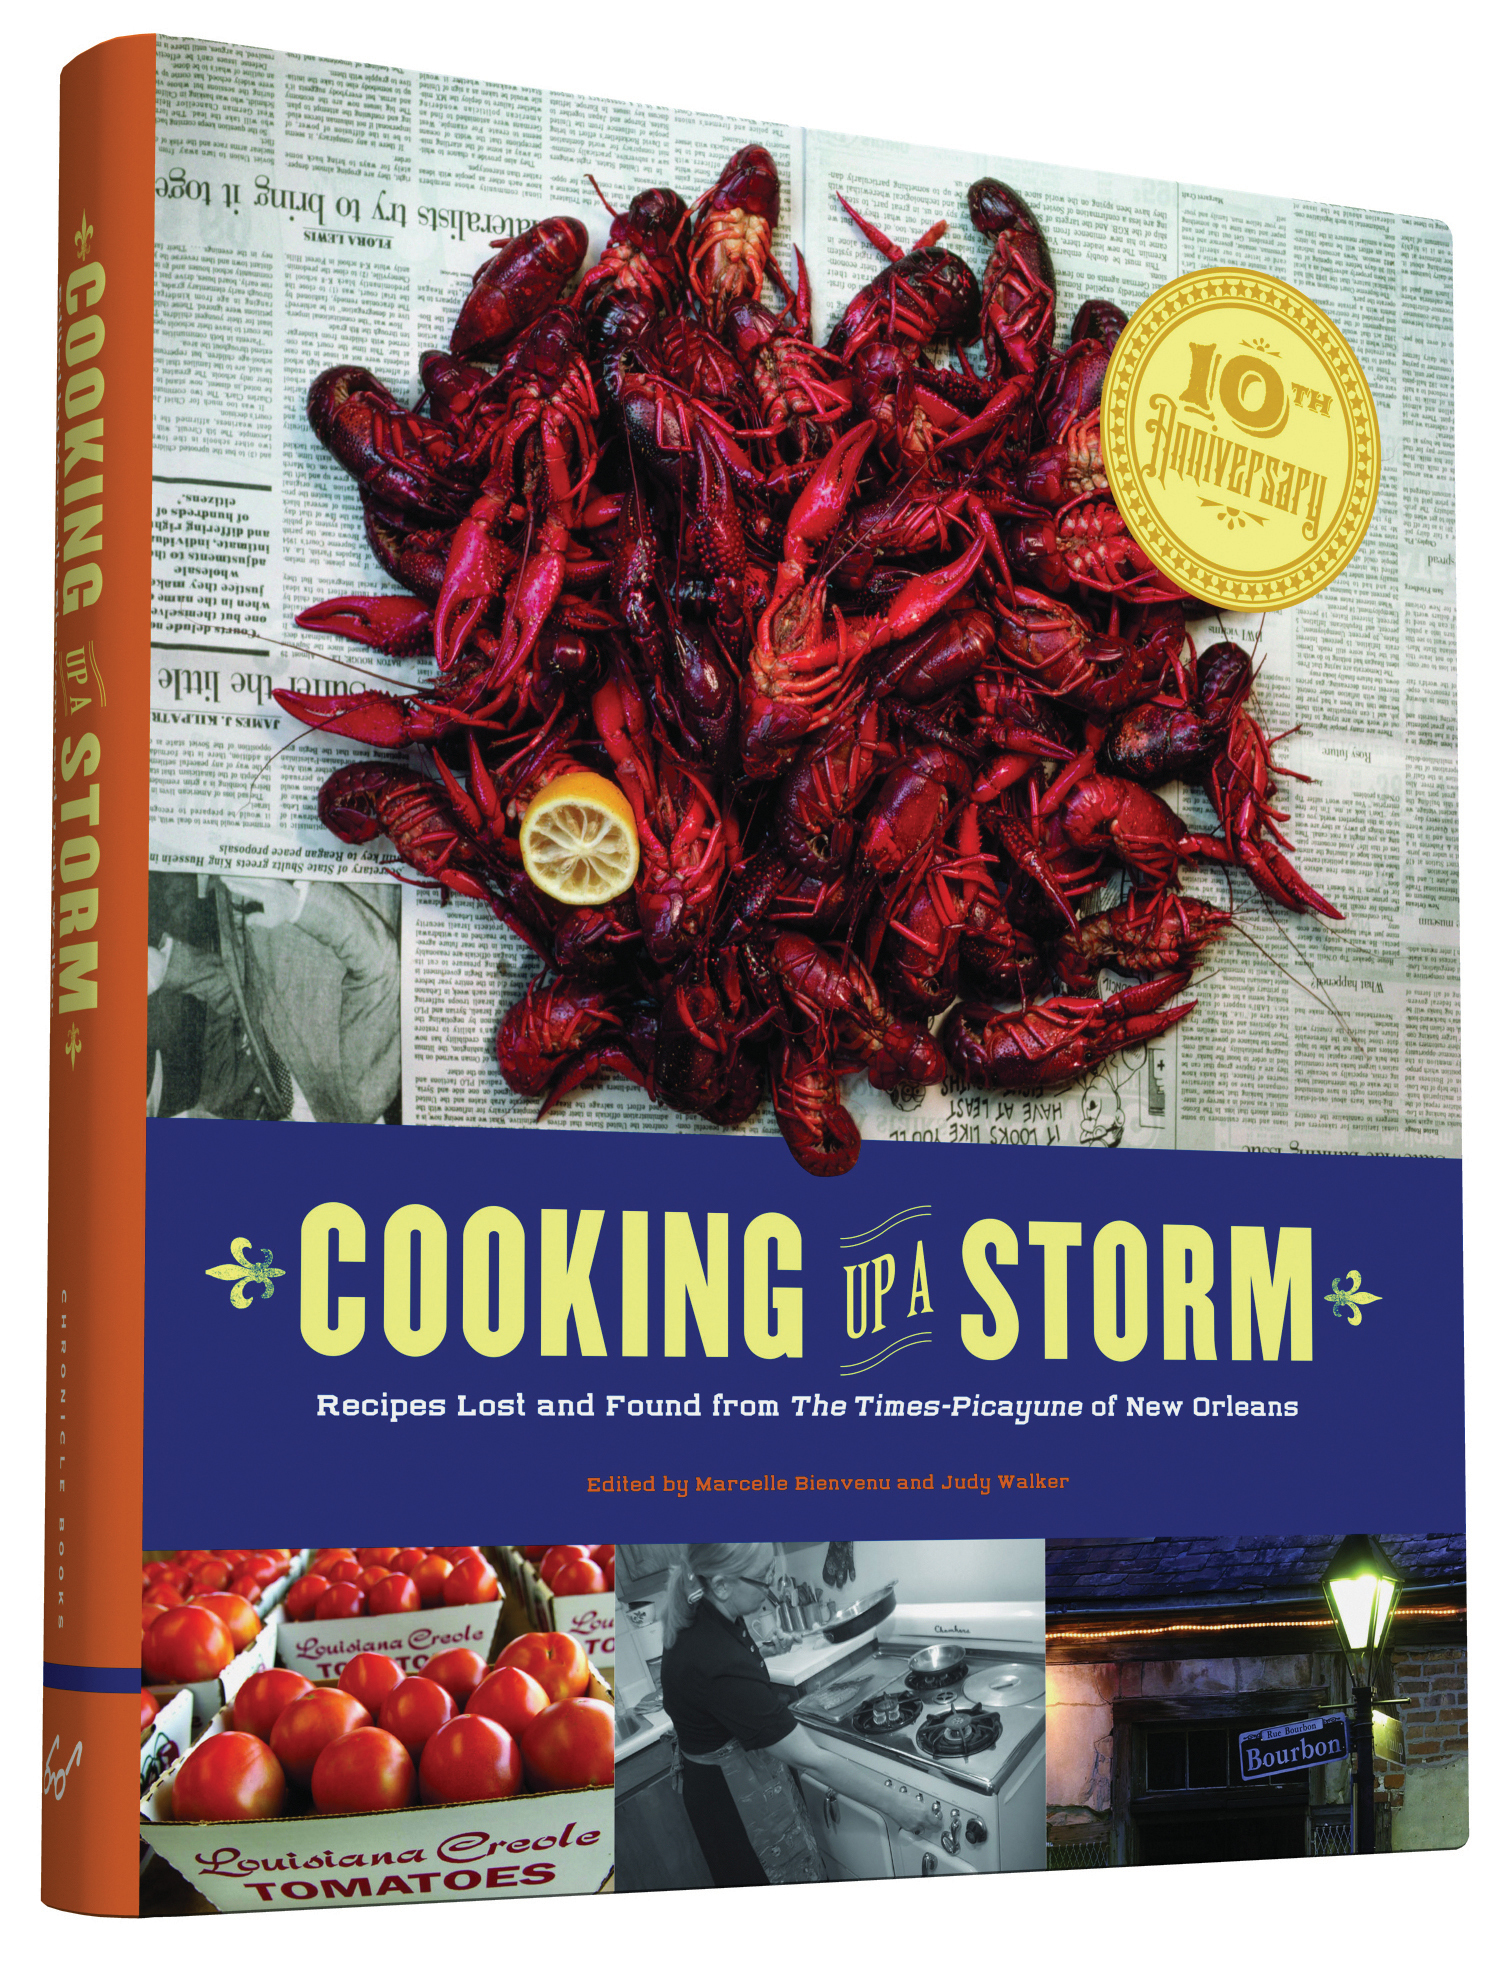 Cooking Up A Storm: Recipes Lost and found from the Times-Picayune of New Orleans  by  Marcelle Bienvenu